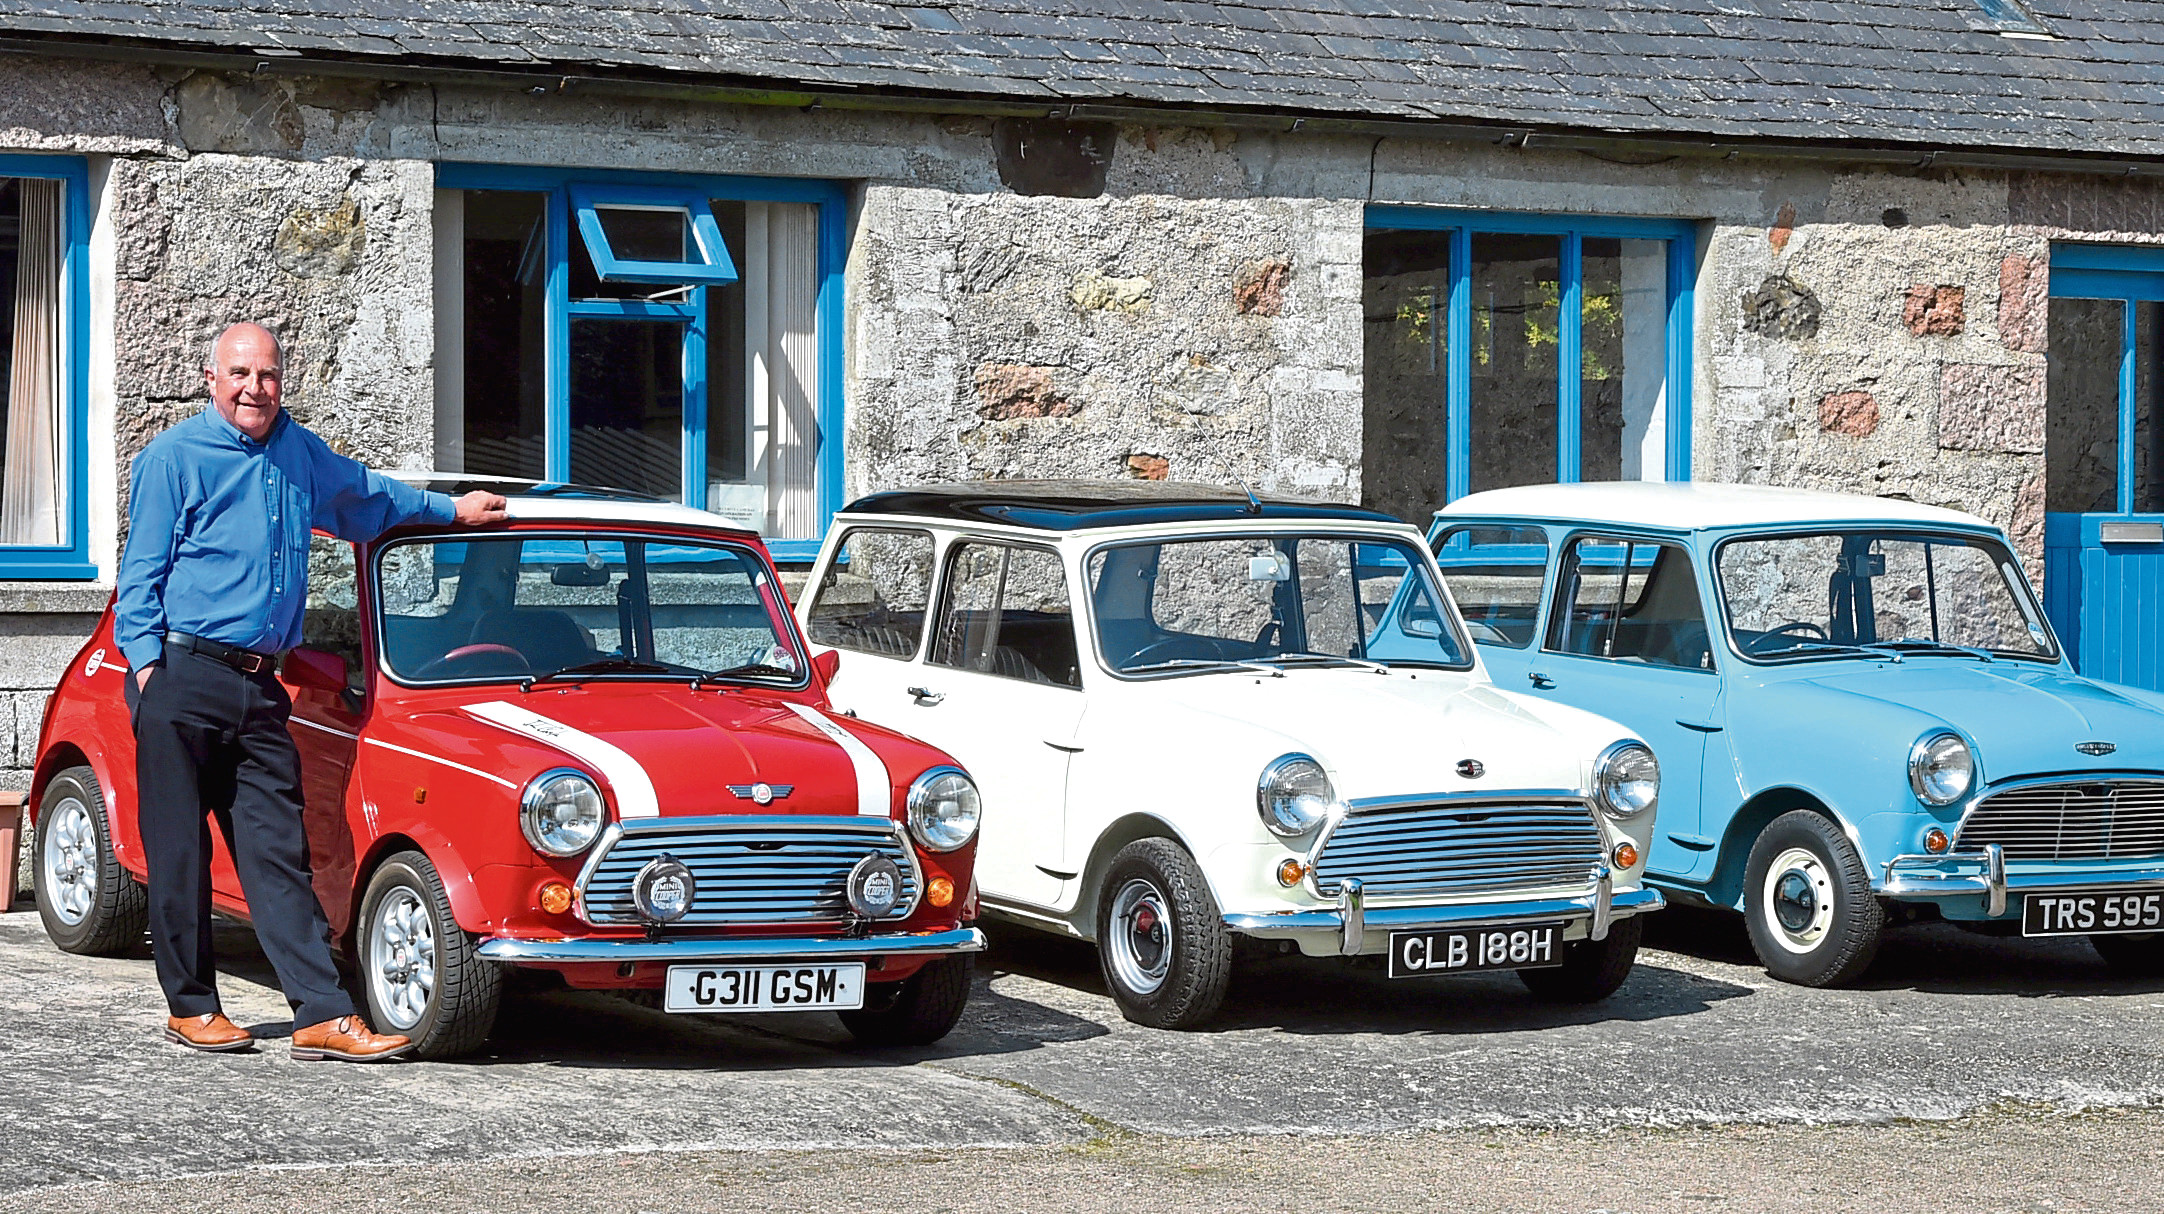 Cyril Craig with his Prestige Mini Coopers at Hatton. Pictures and video by Jim Irvine